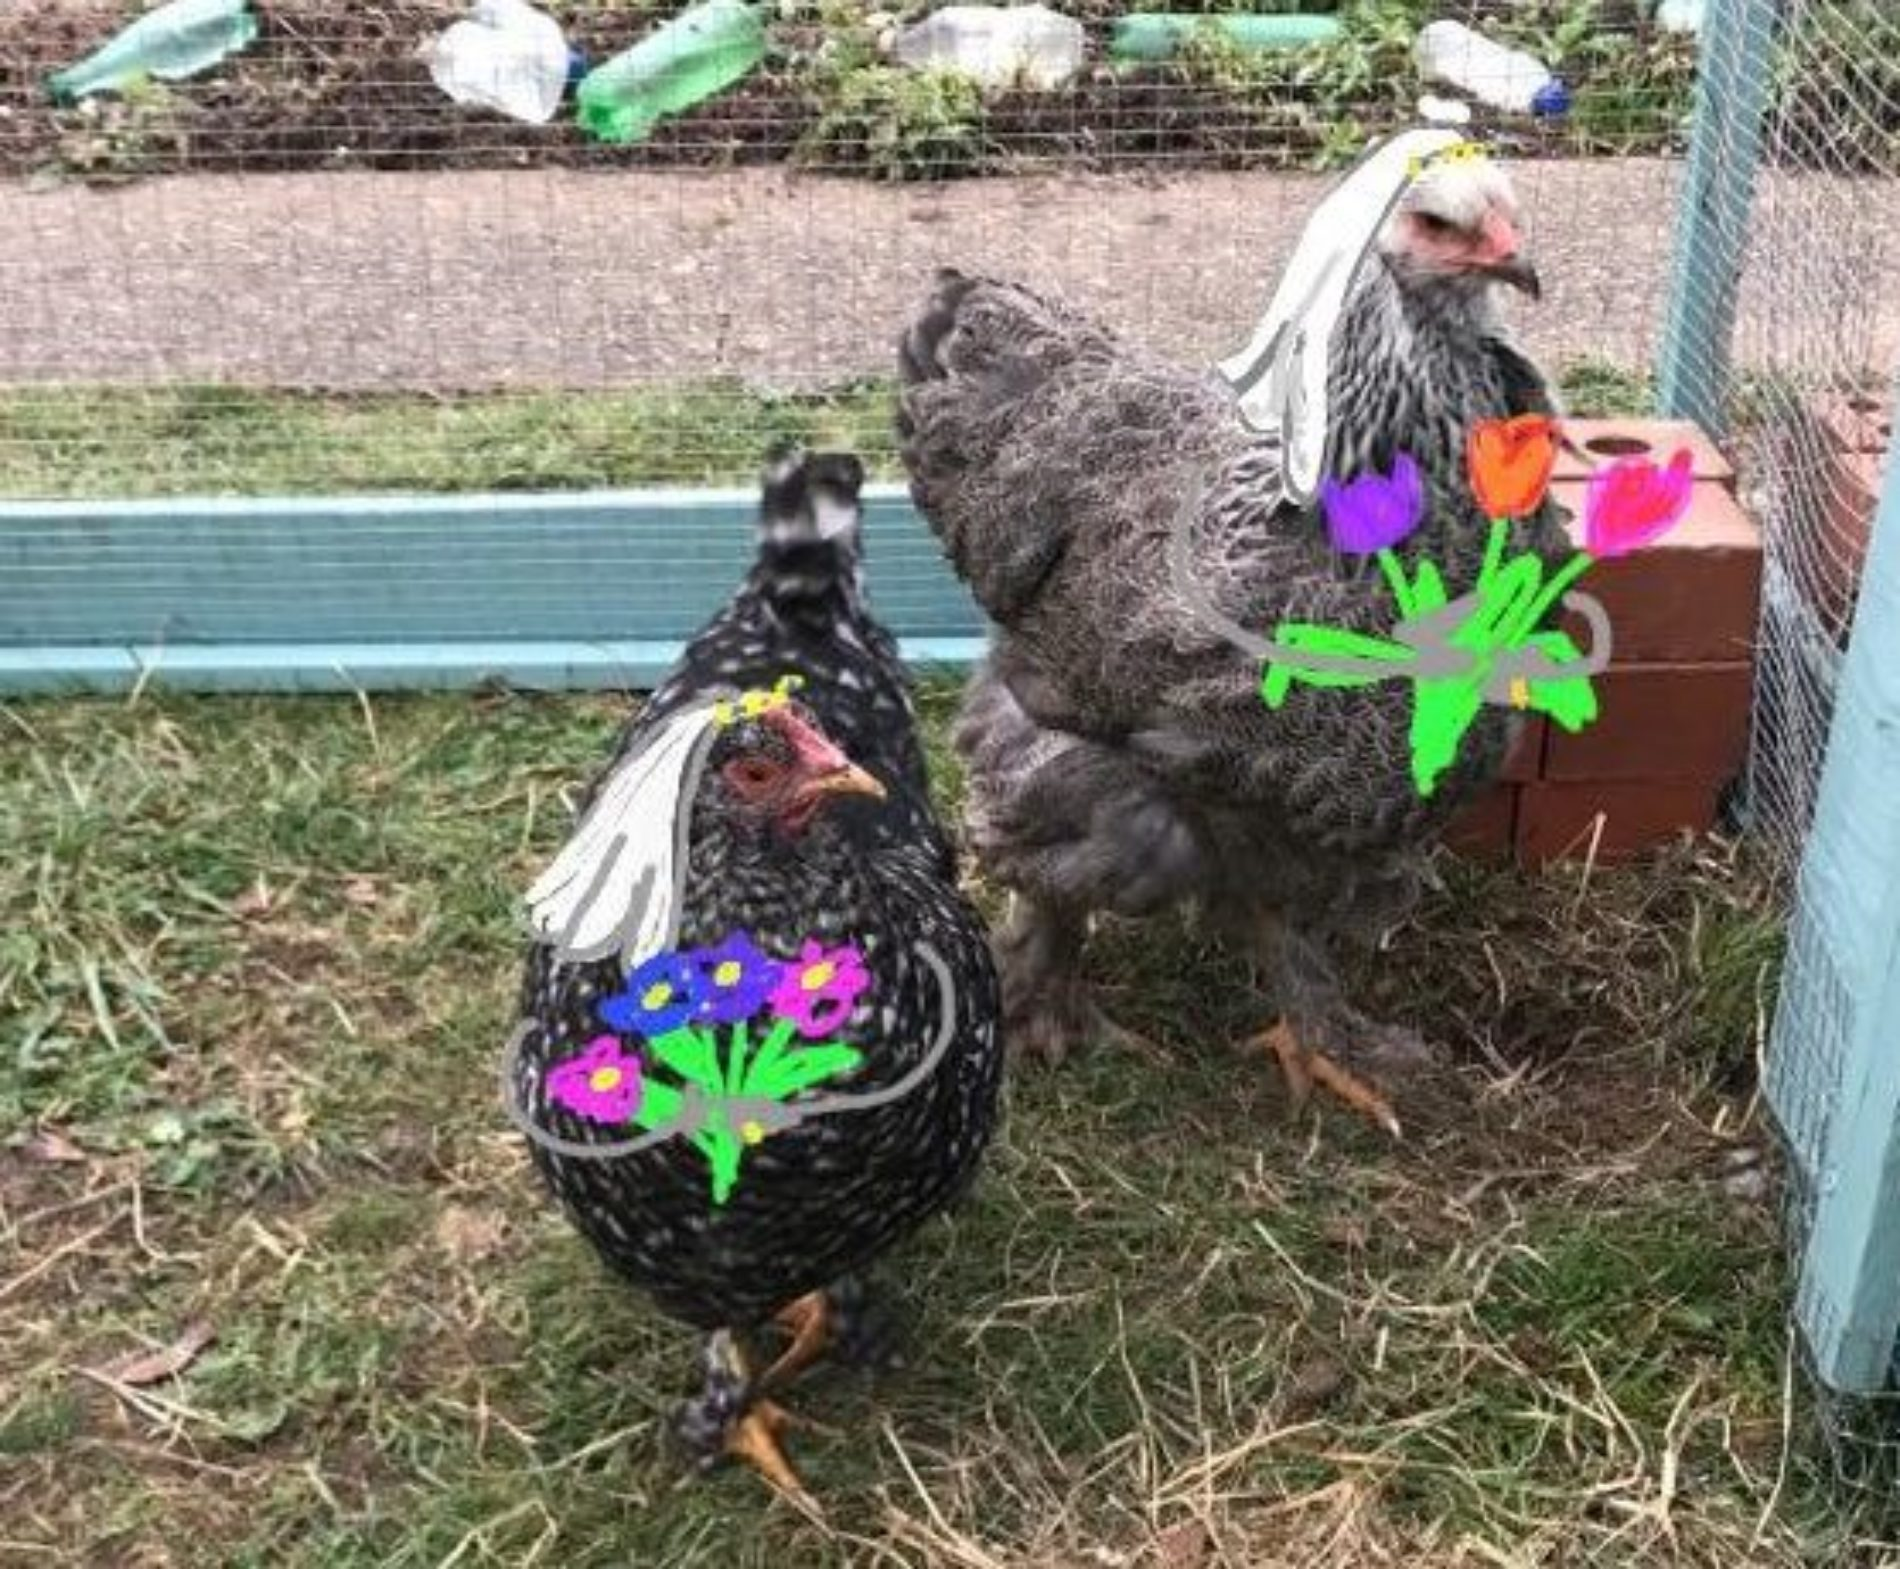 This woman realizes her chickens are in a lesbian relationship and it's an animal-farm love story